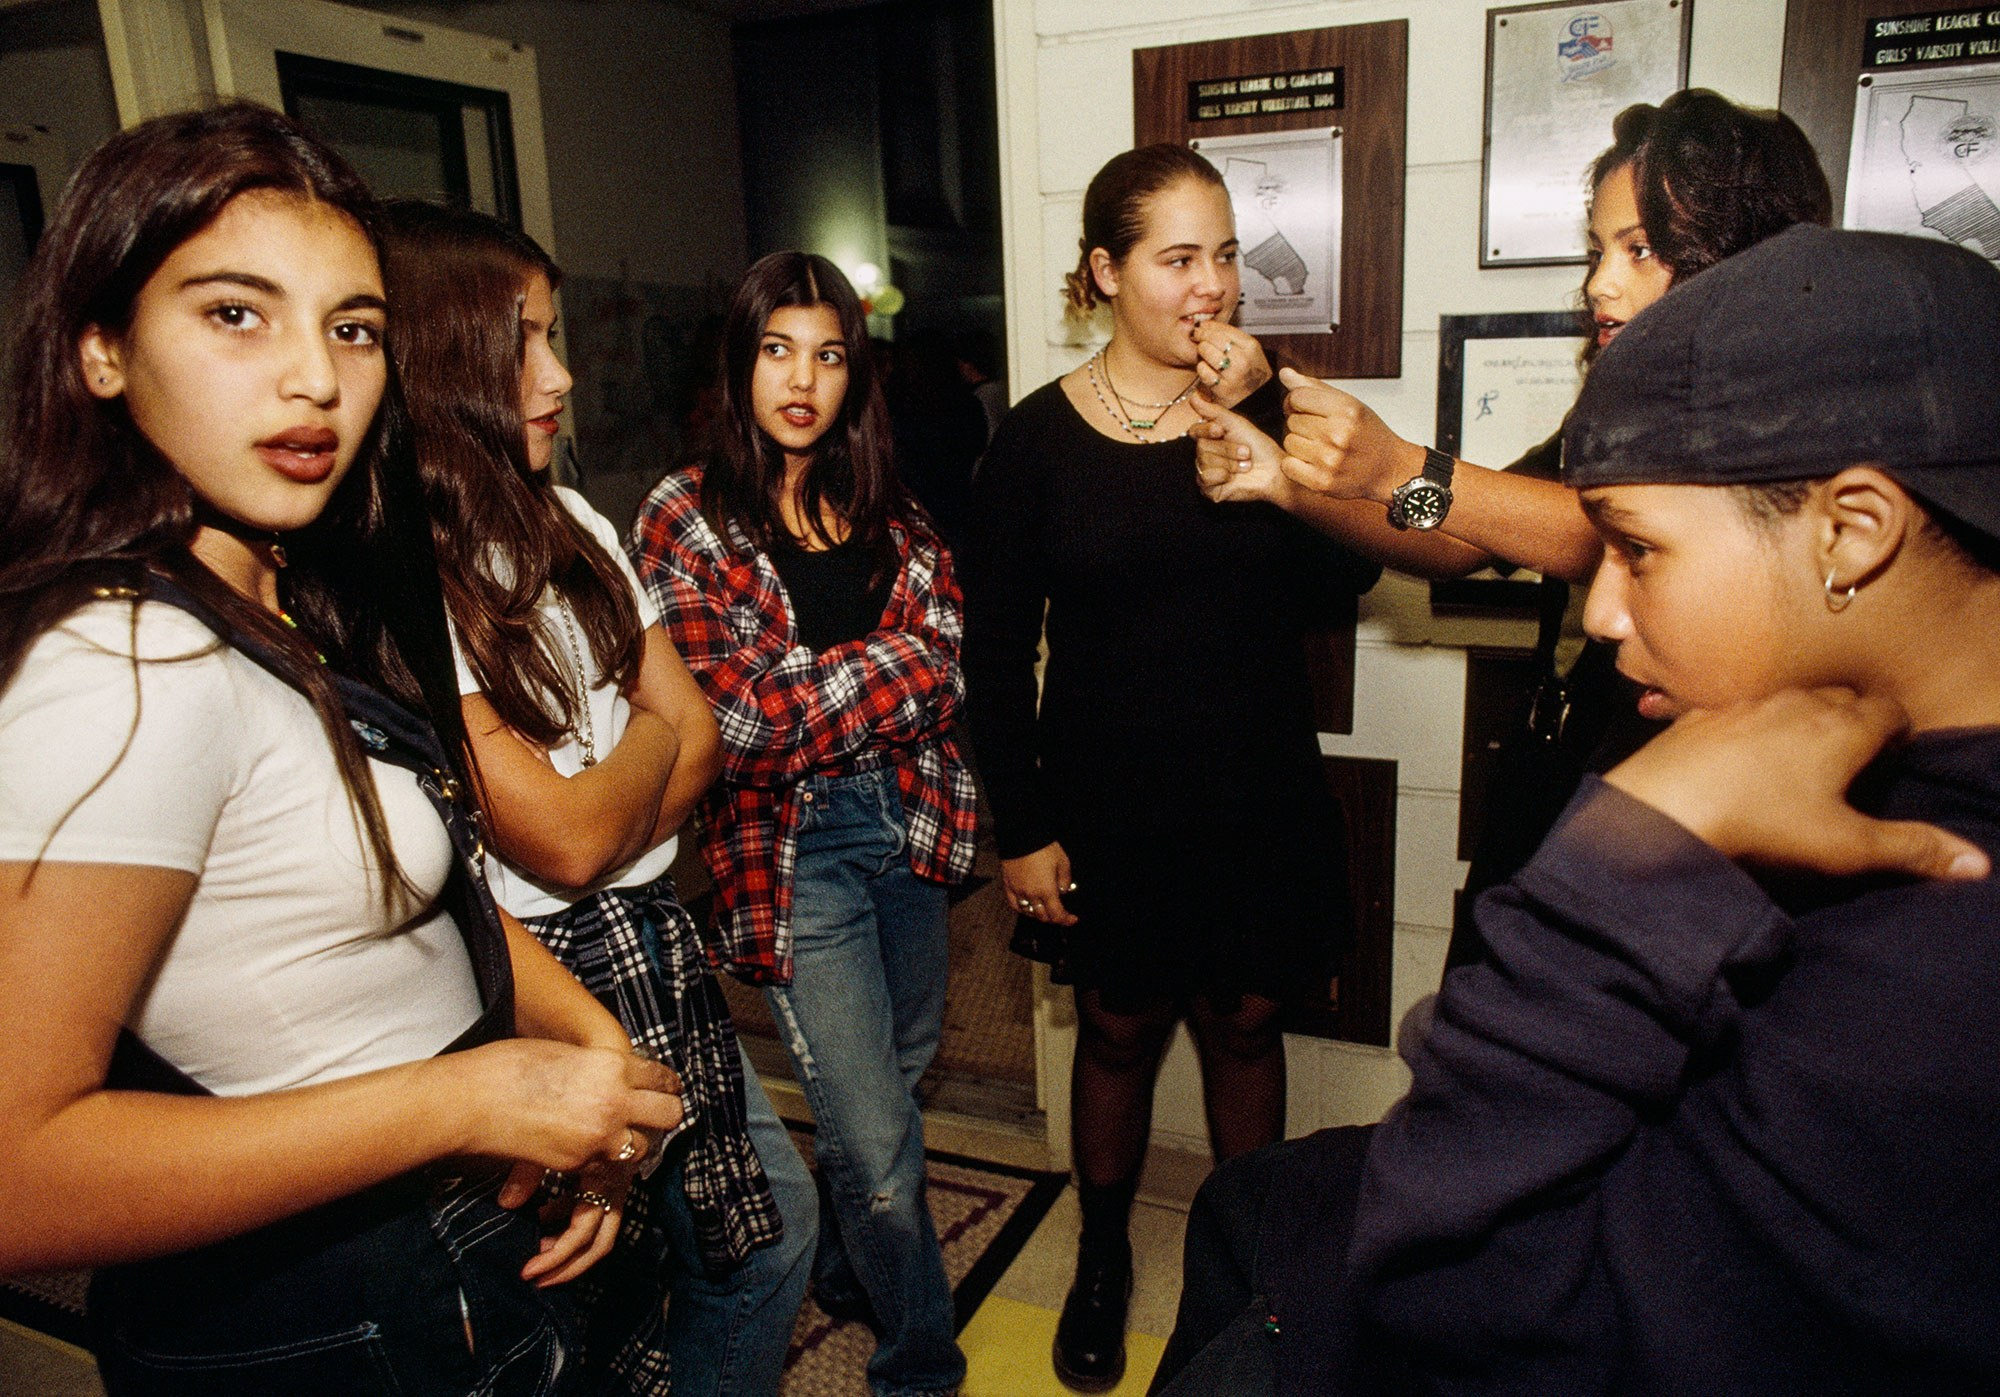 Kim Kardashian + friends photographed by Greenfield in 1992